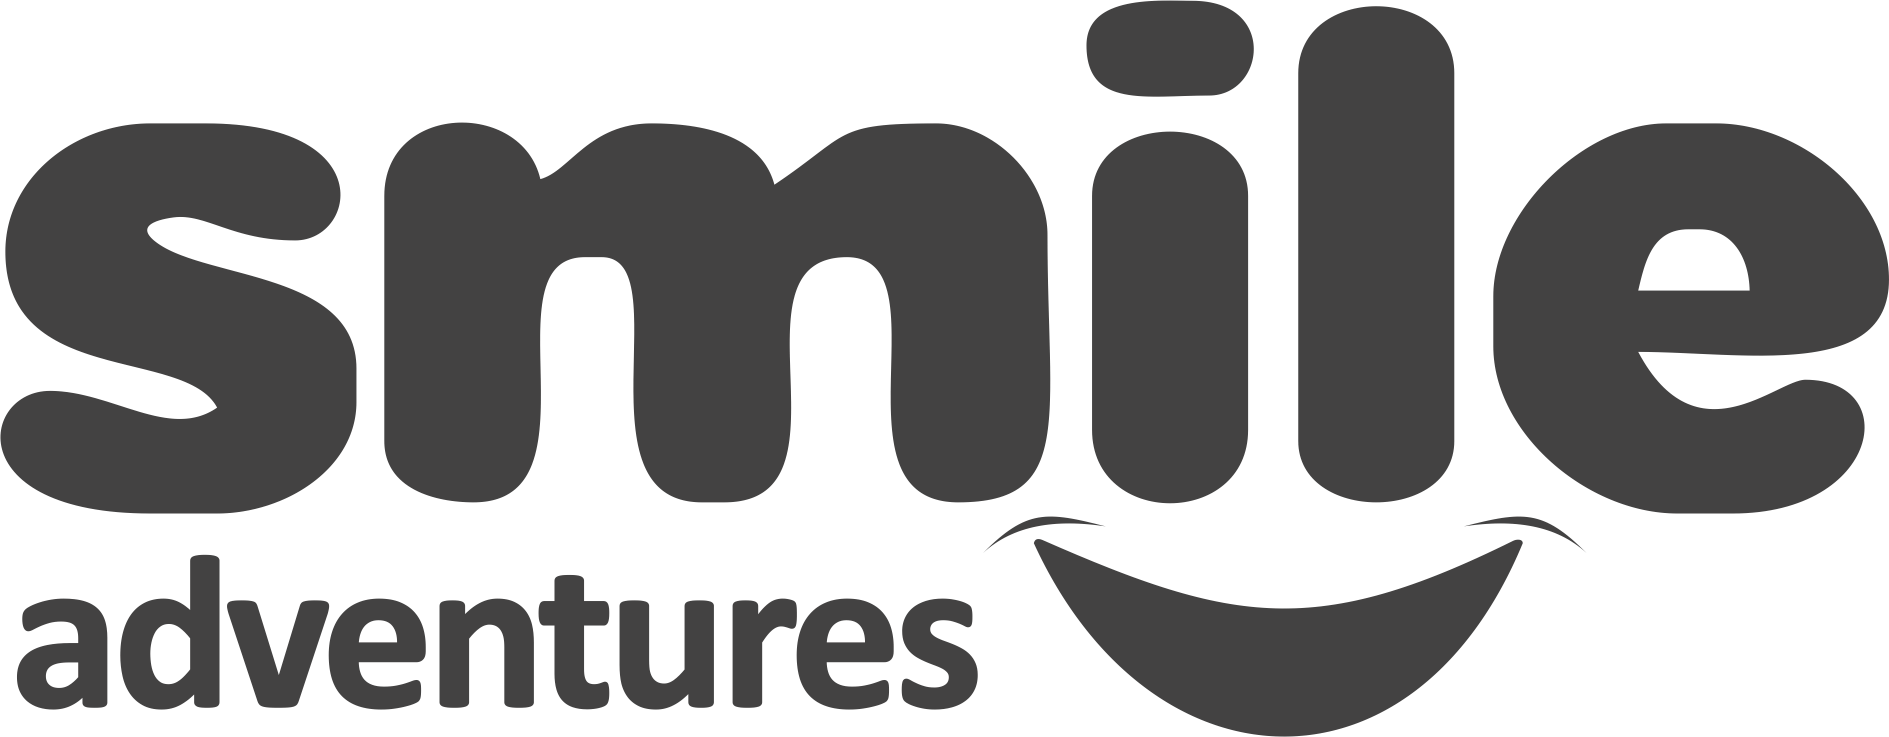 Smile Adventures Logo